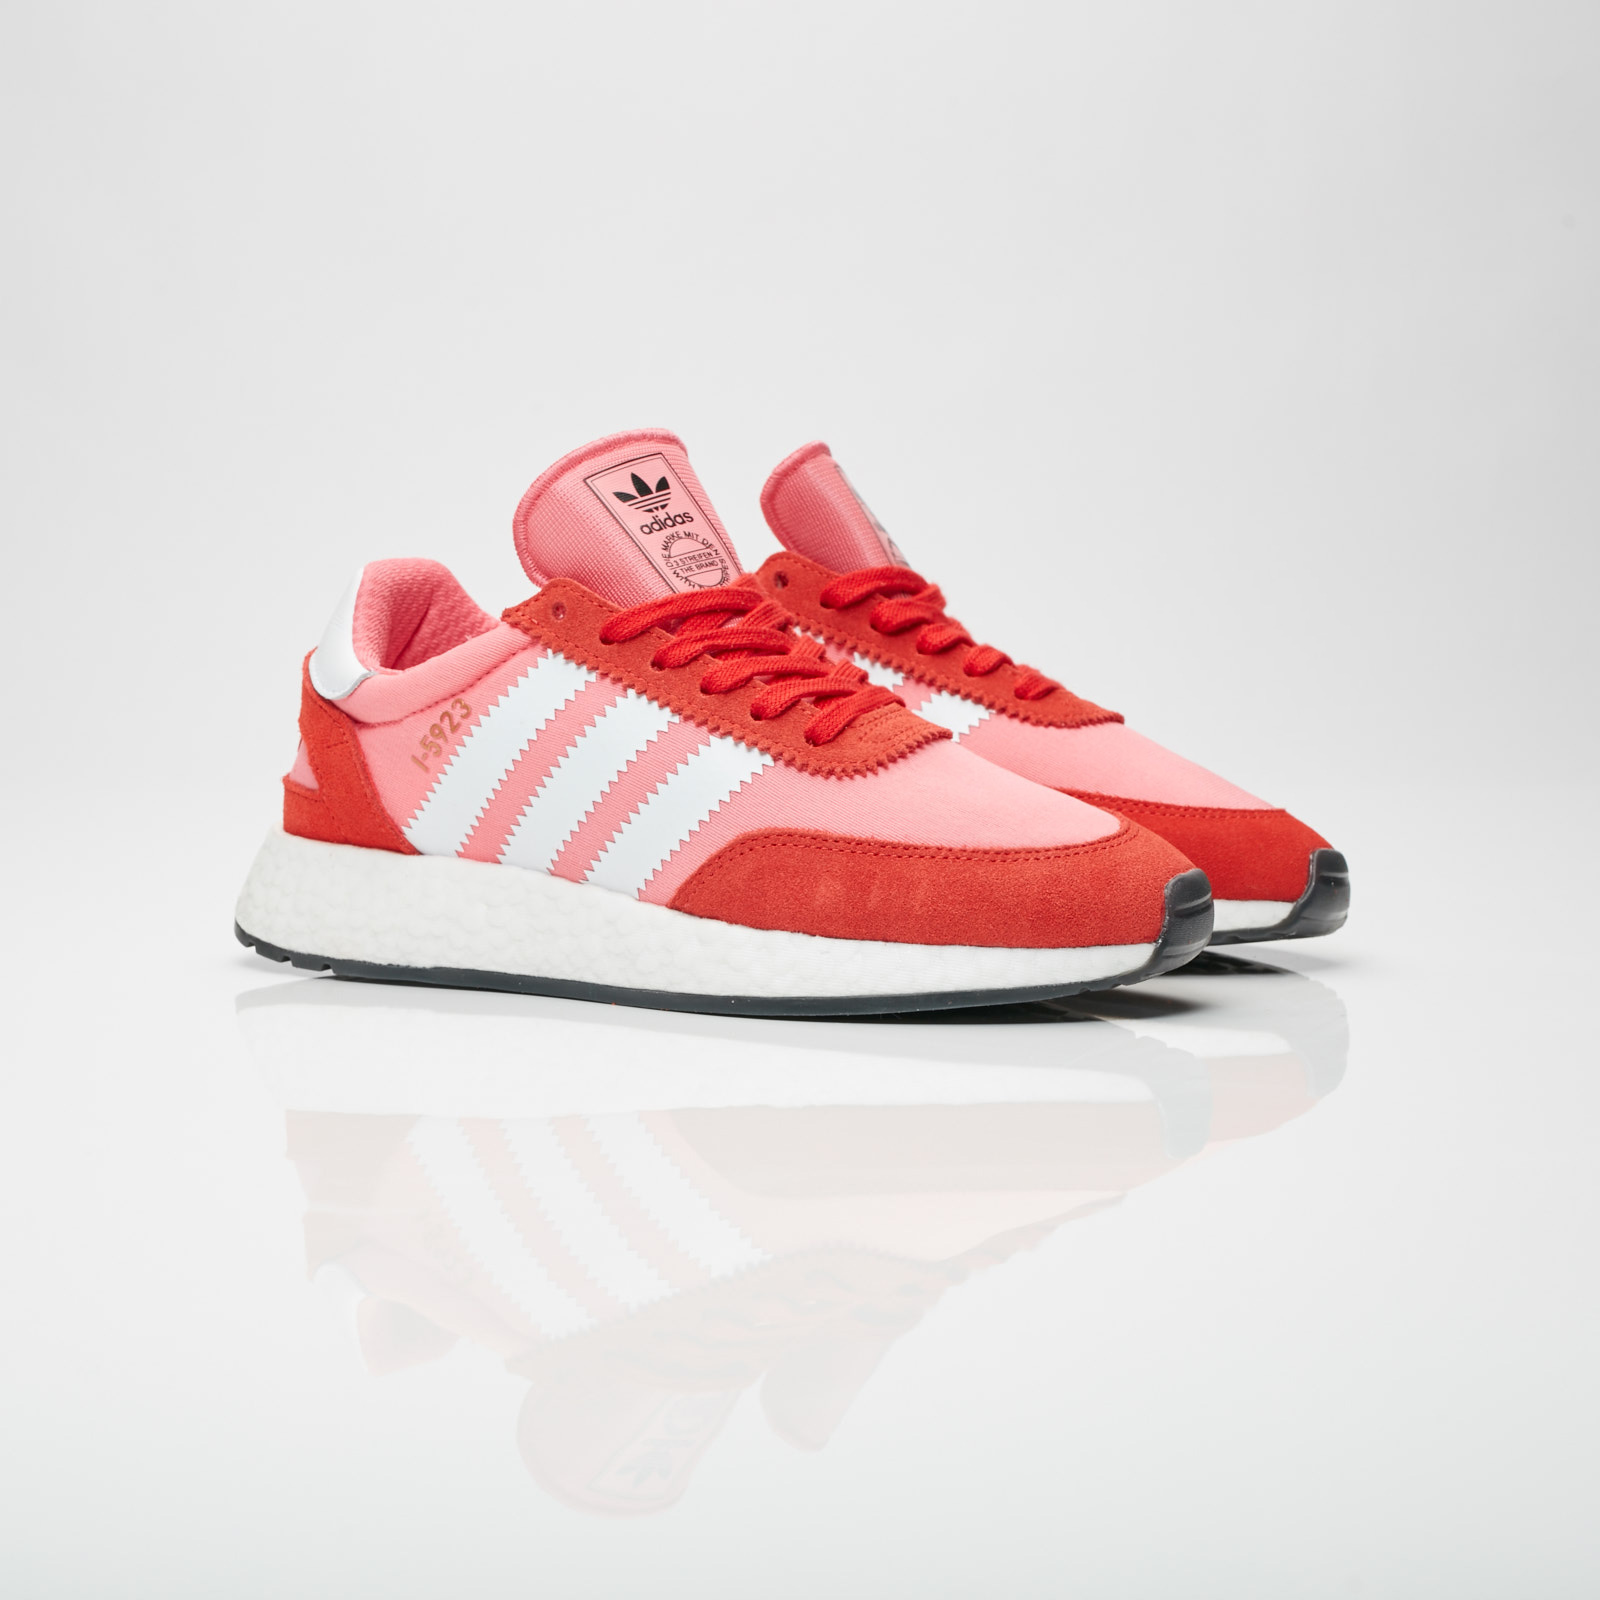 adidas I 5923 W Cq2527 Sneakersnstuff I Sneakers